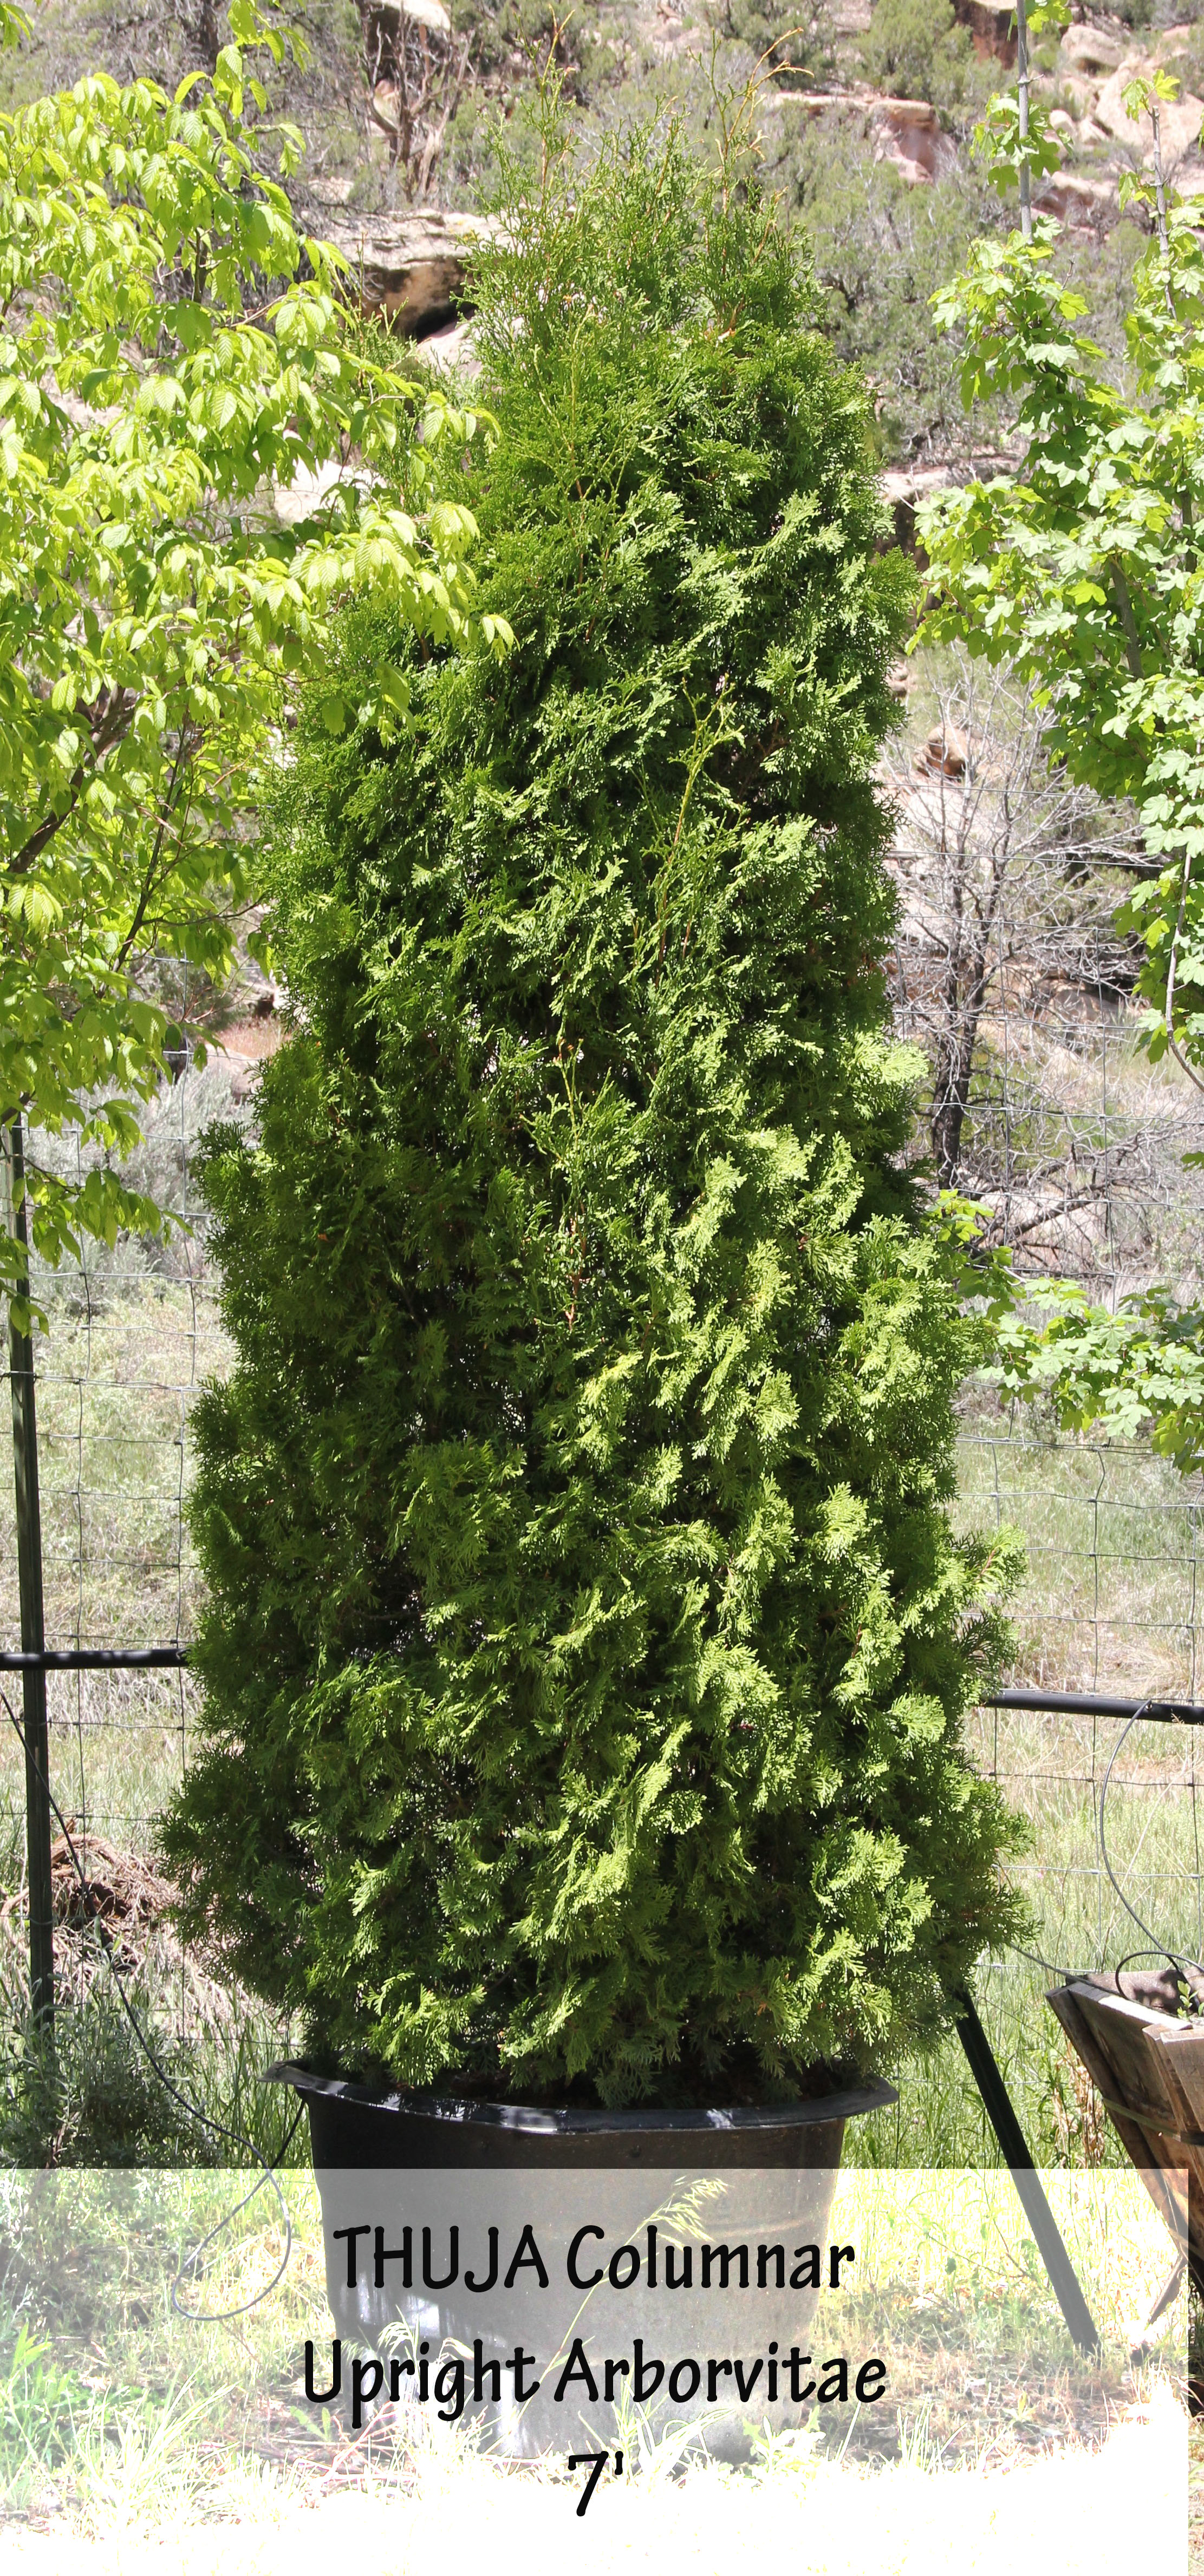 Upright Arborvitae